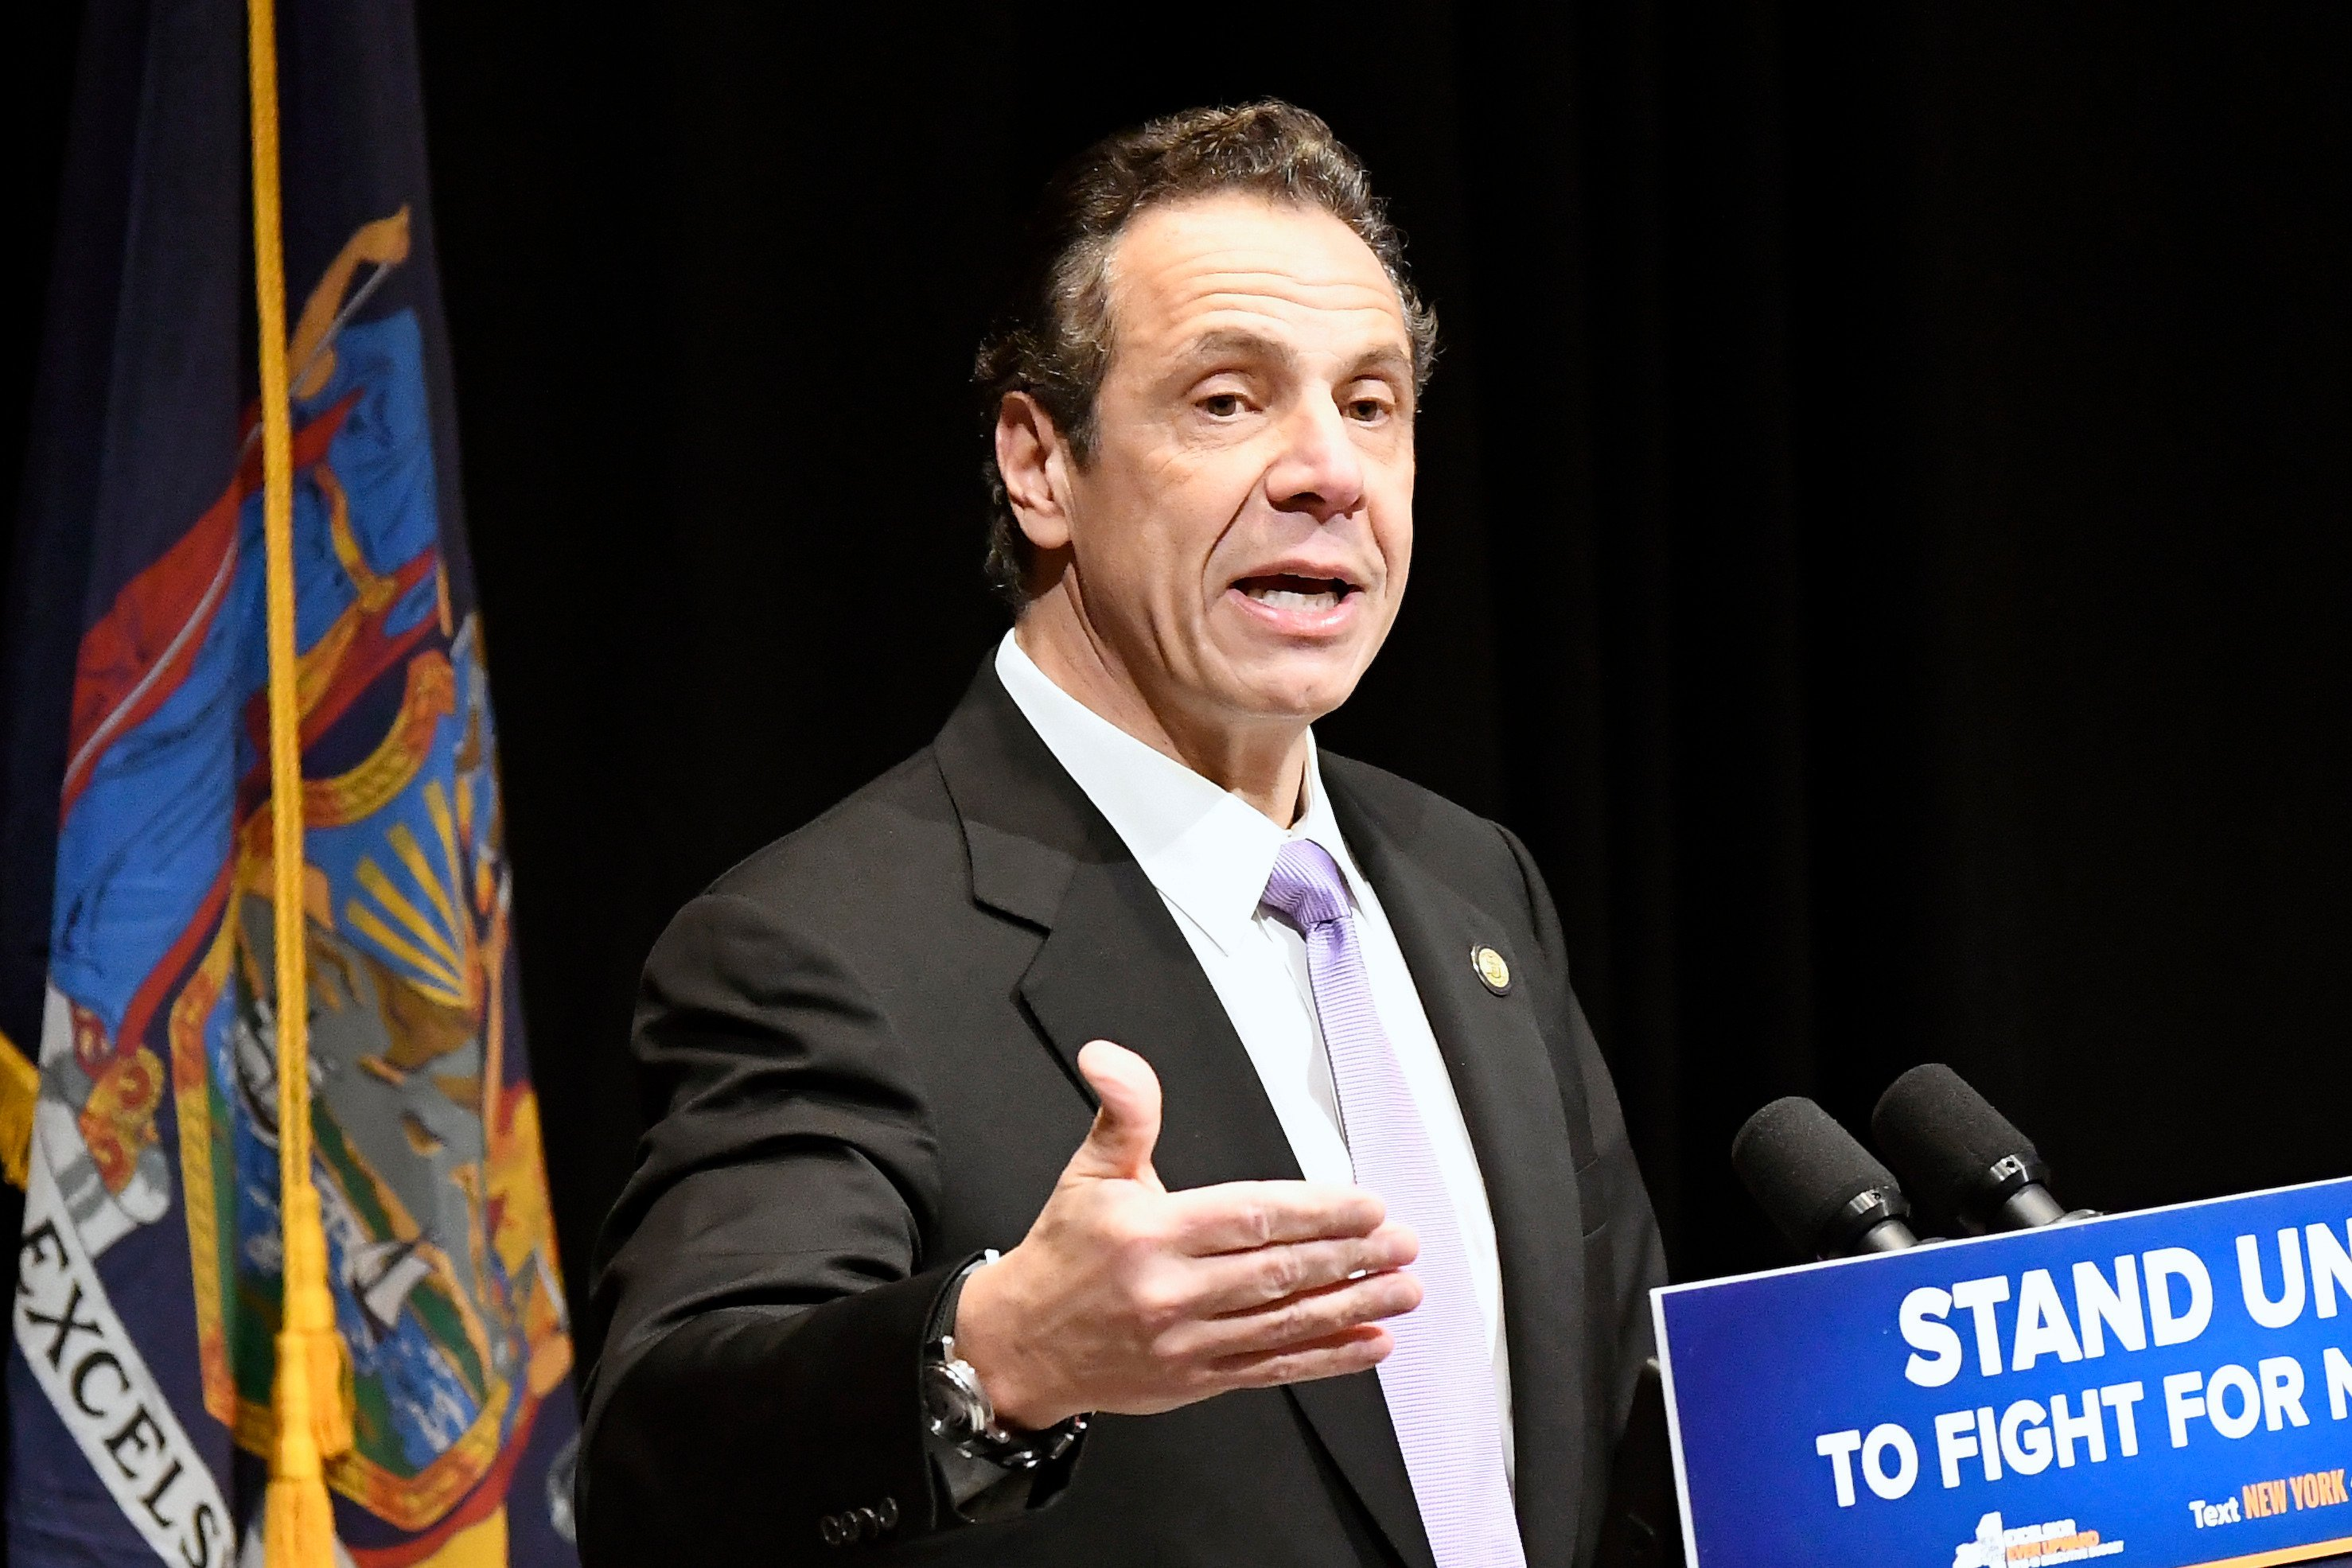 Cuomo proposes state tax overhaul to counteract federal reforms